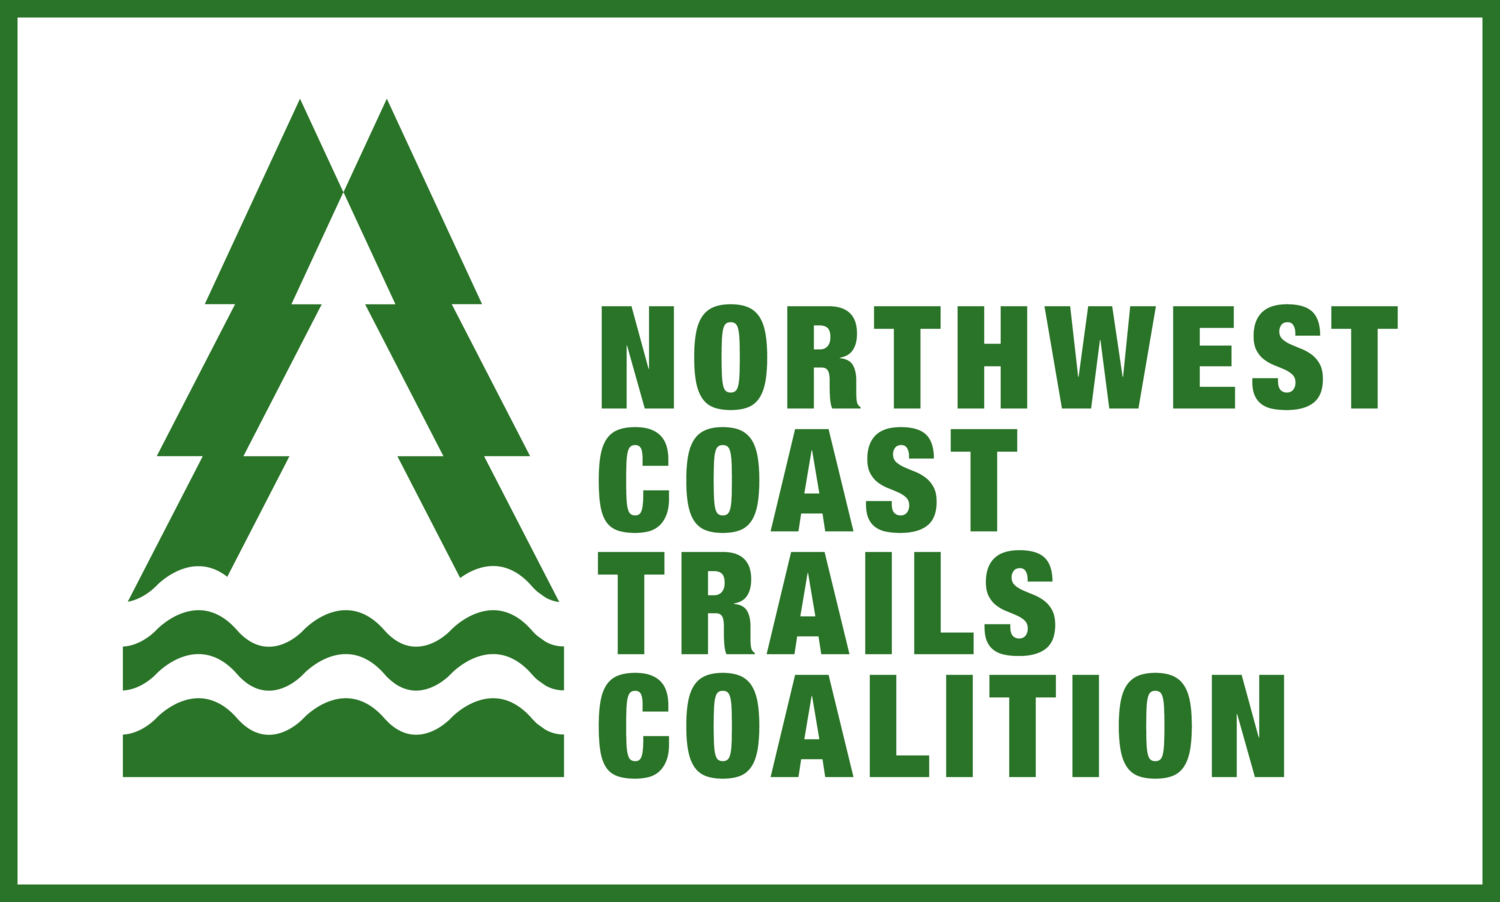 Northwest Coast Trails Coalition